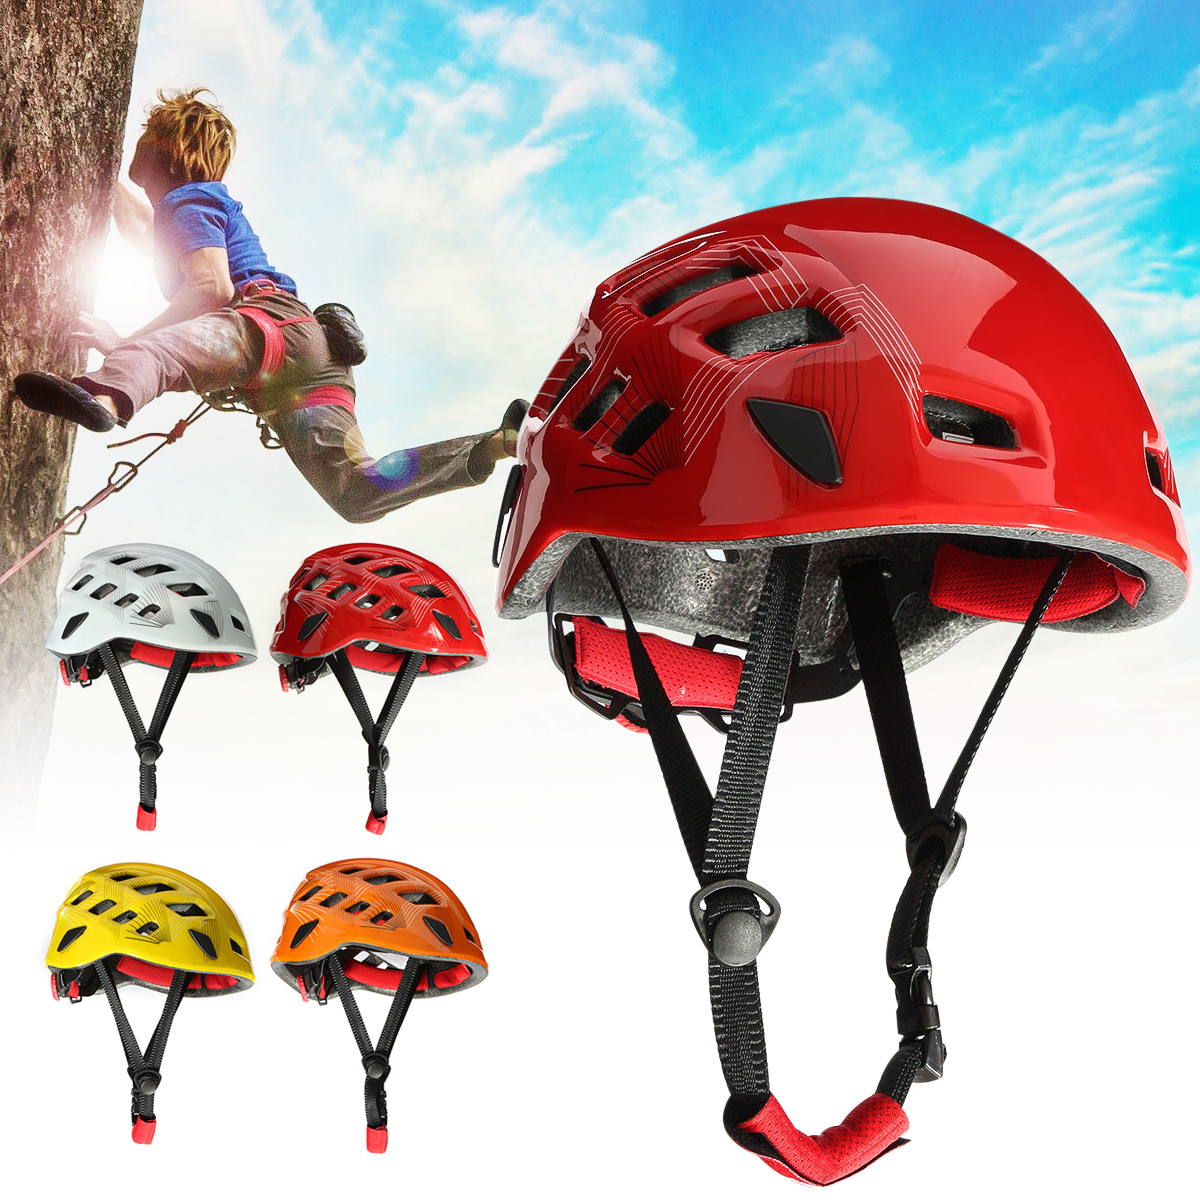 Safety Rock Climbing Downhill Caving Rappelling Rescue constructionhat Helmet Mountain Construction Safety Protection Helmet